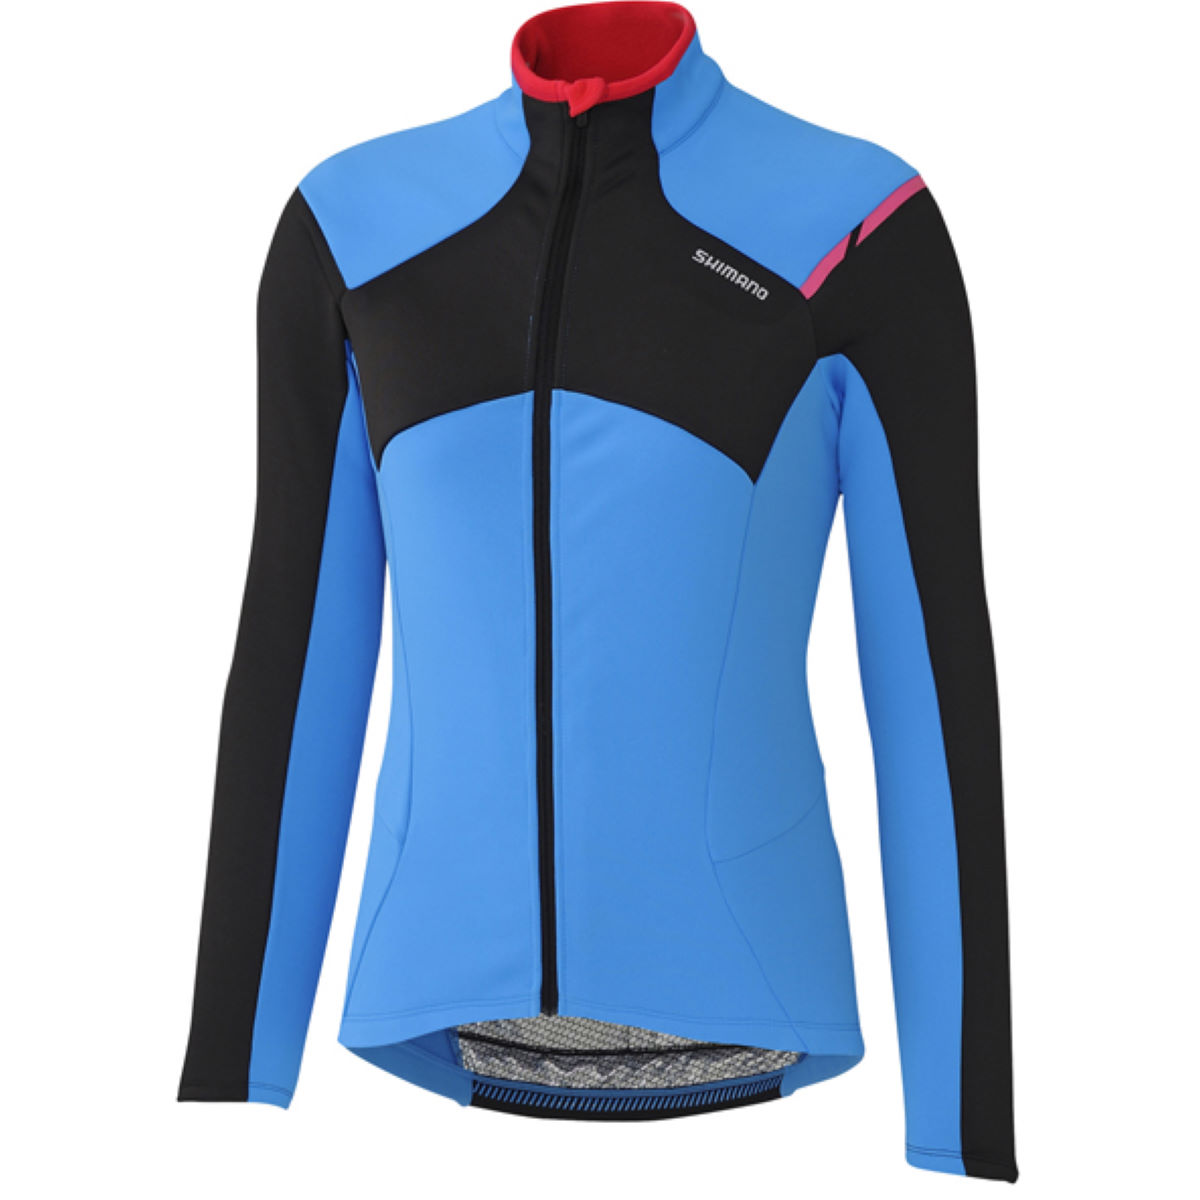 Maillot Femme Shimano Thermal (hiver) - Large Bleu